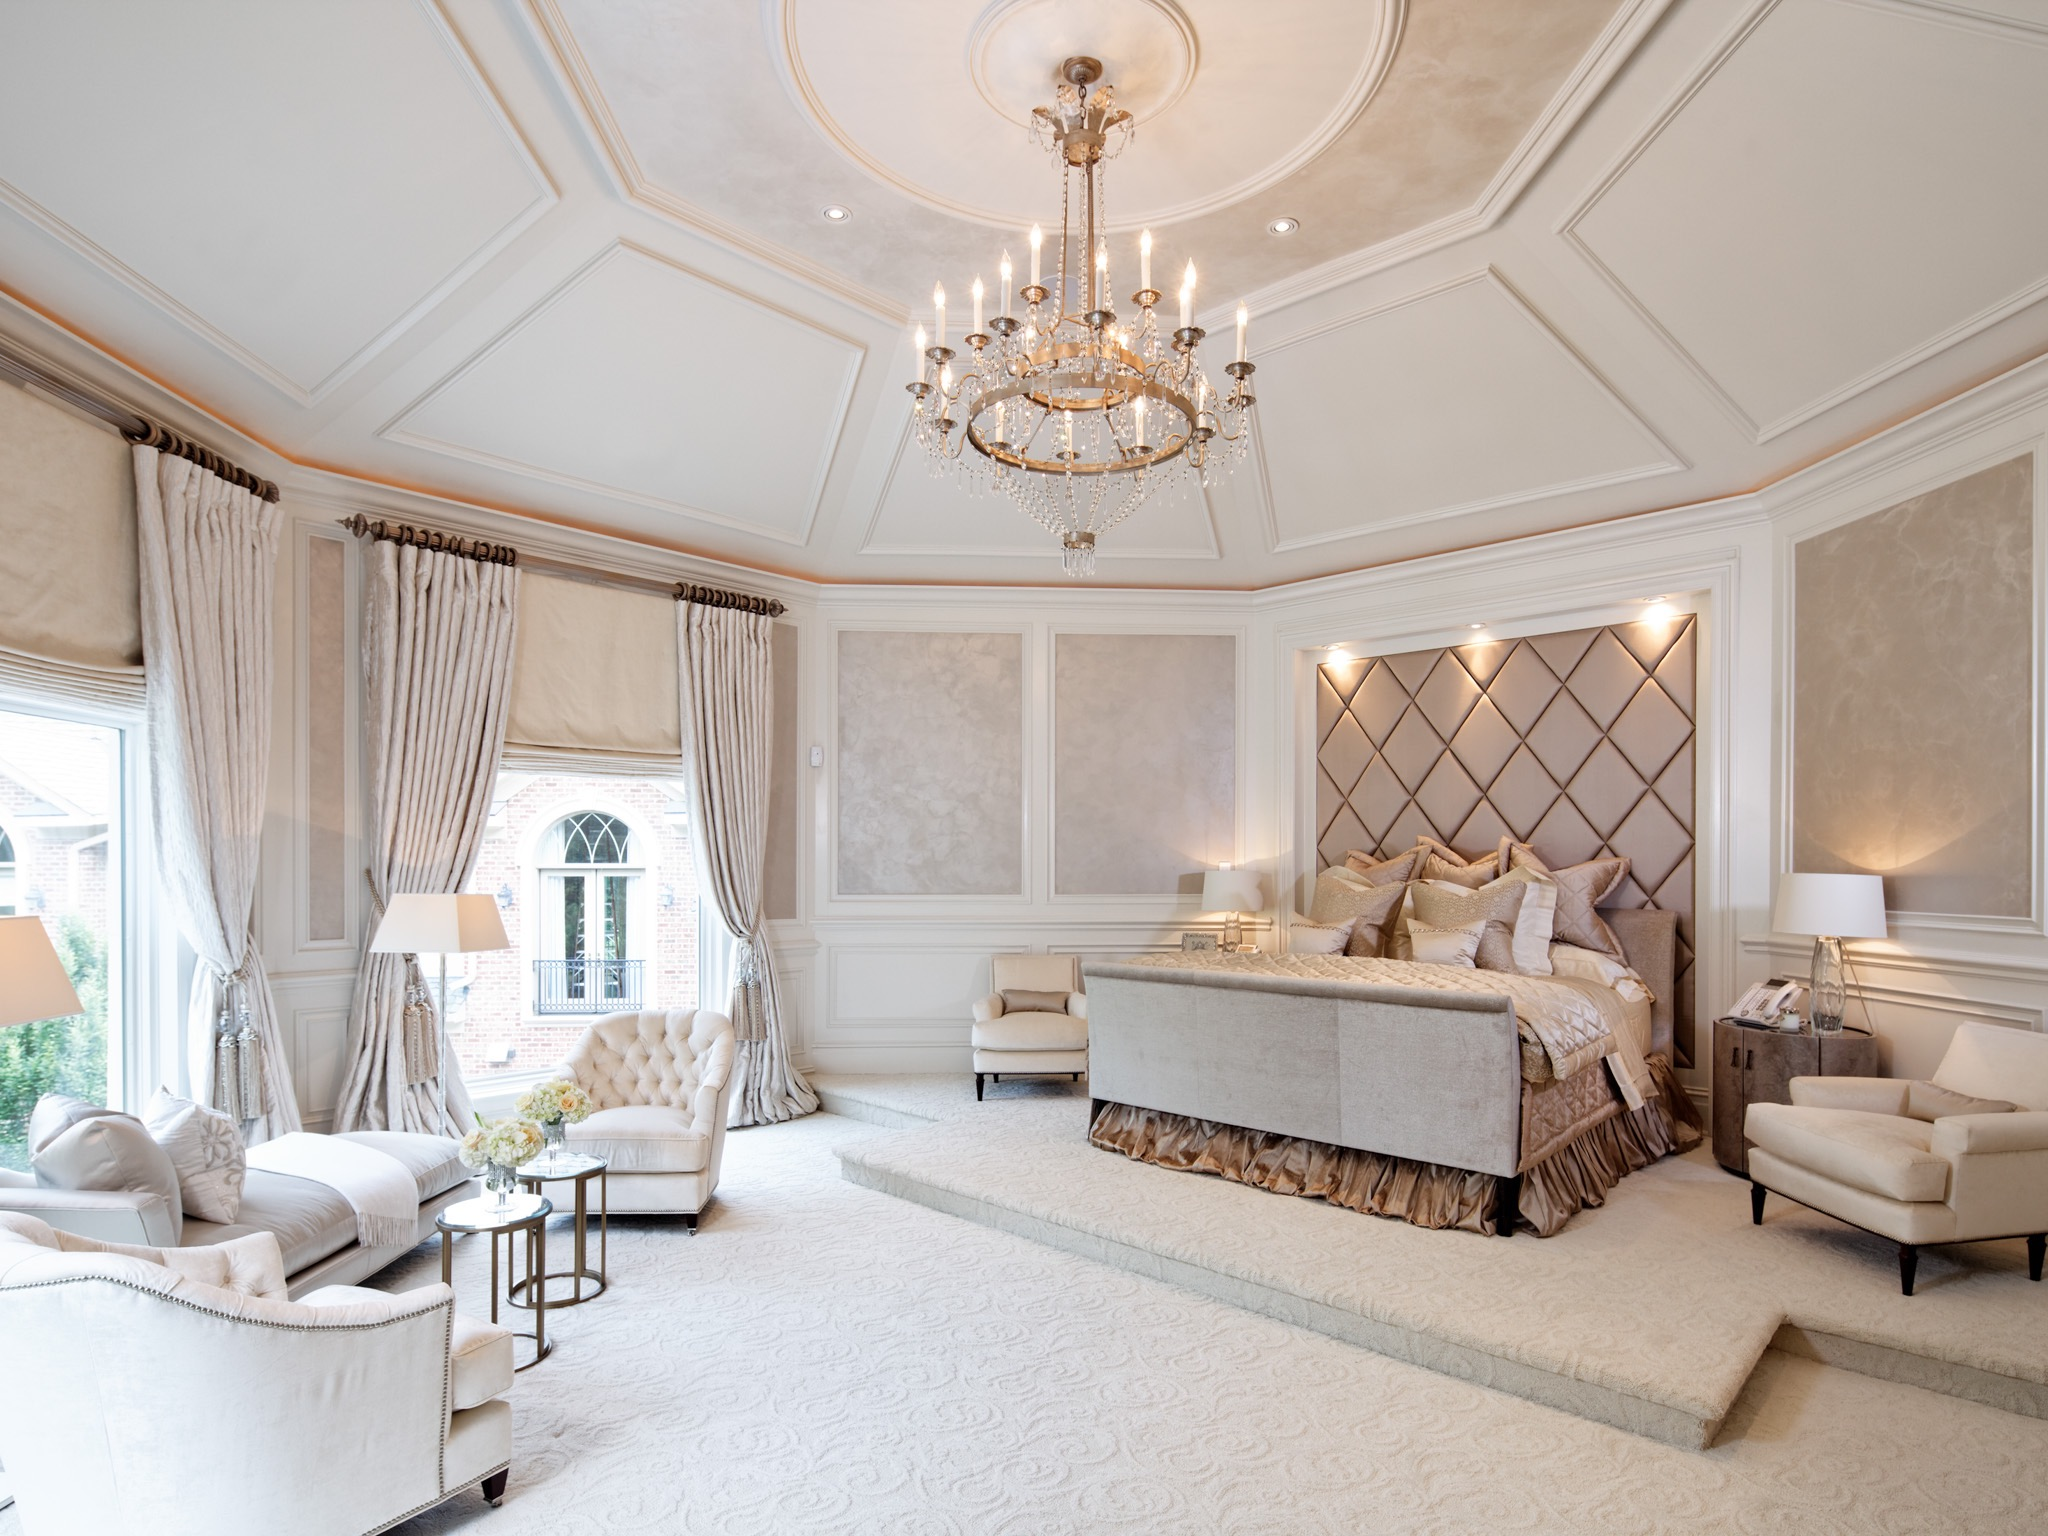 Luxury Indian Bedroom Design With With Elaborate Tray Ceiling (View 16 of 30)